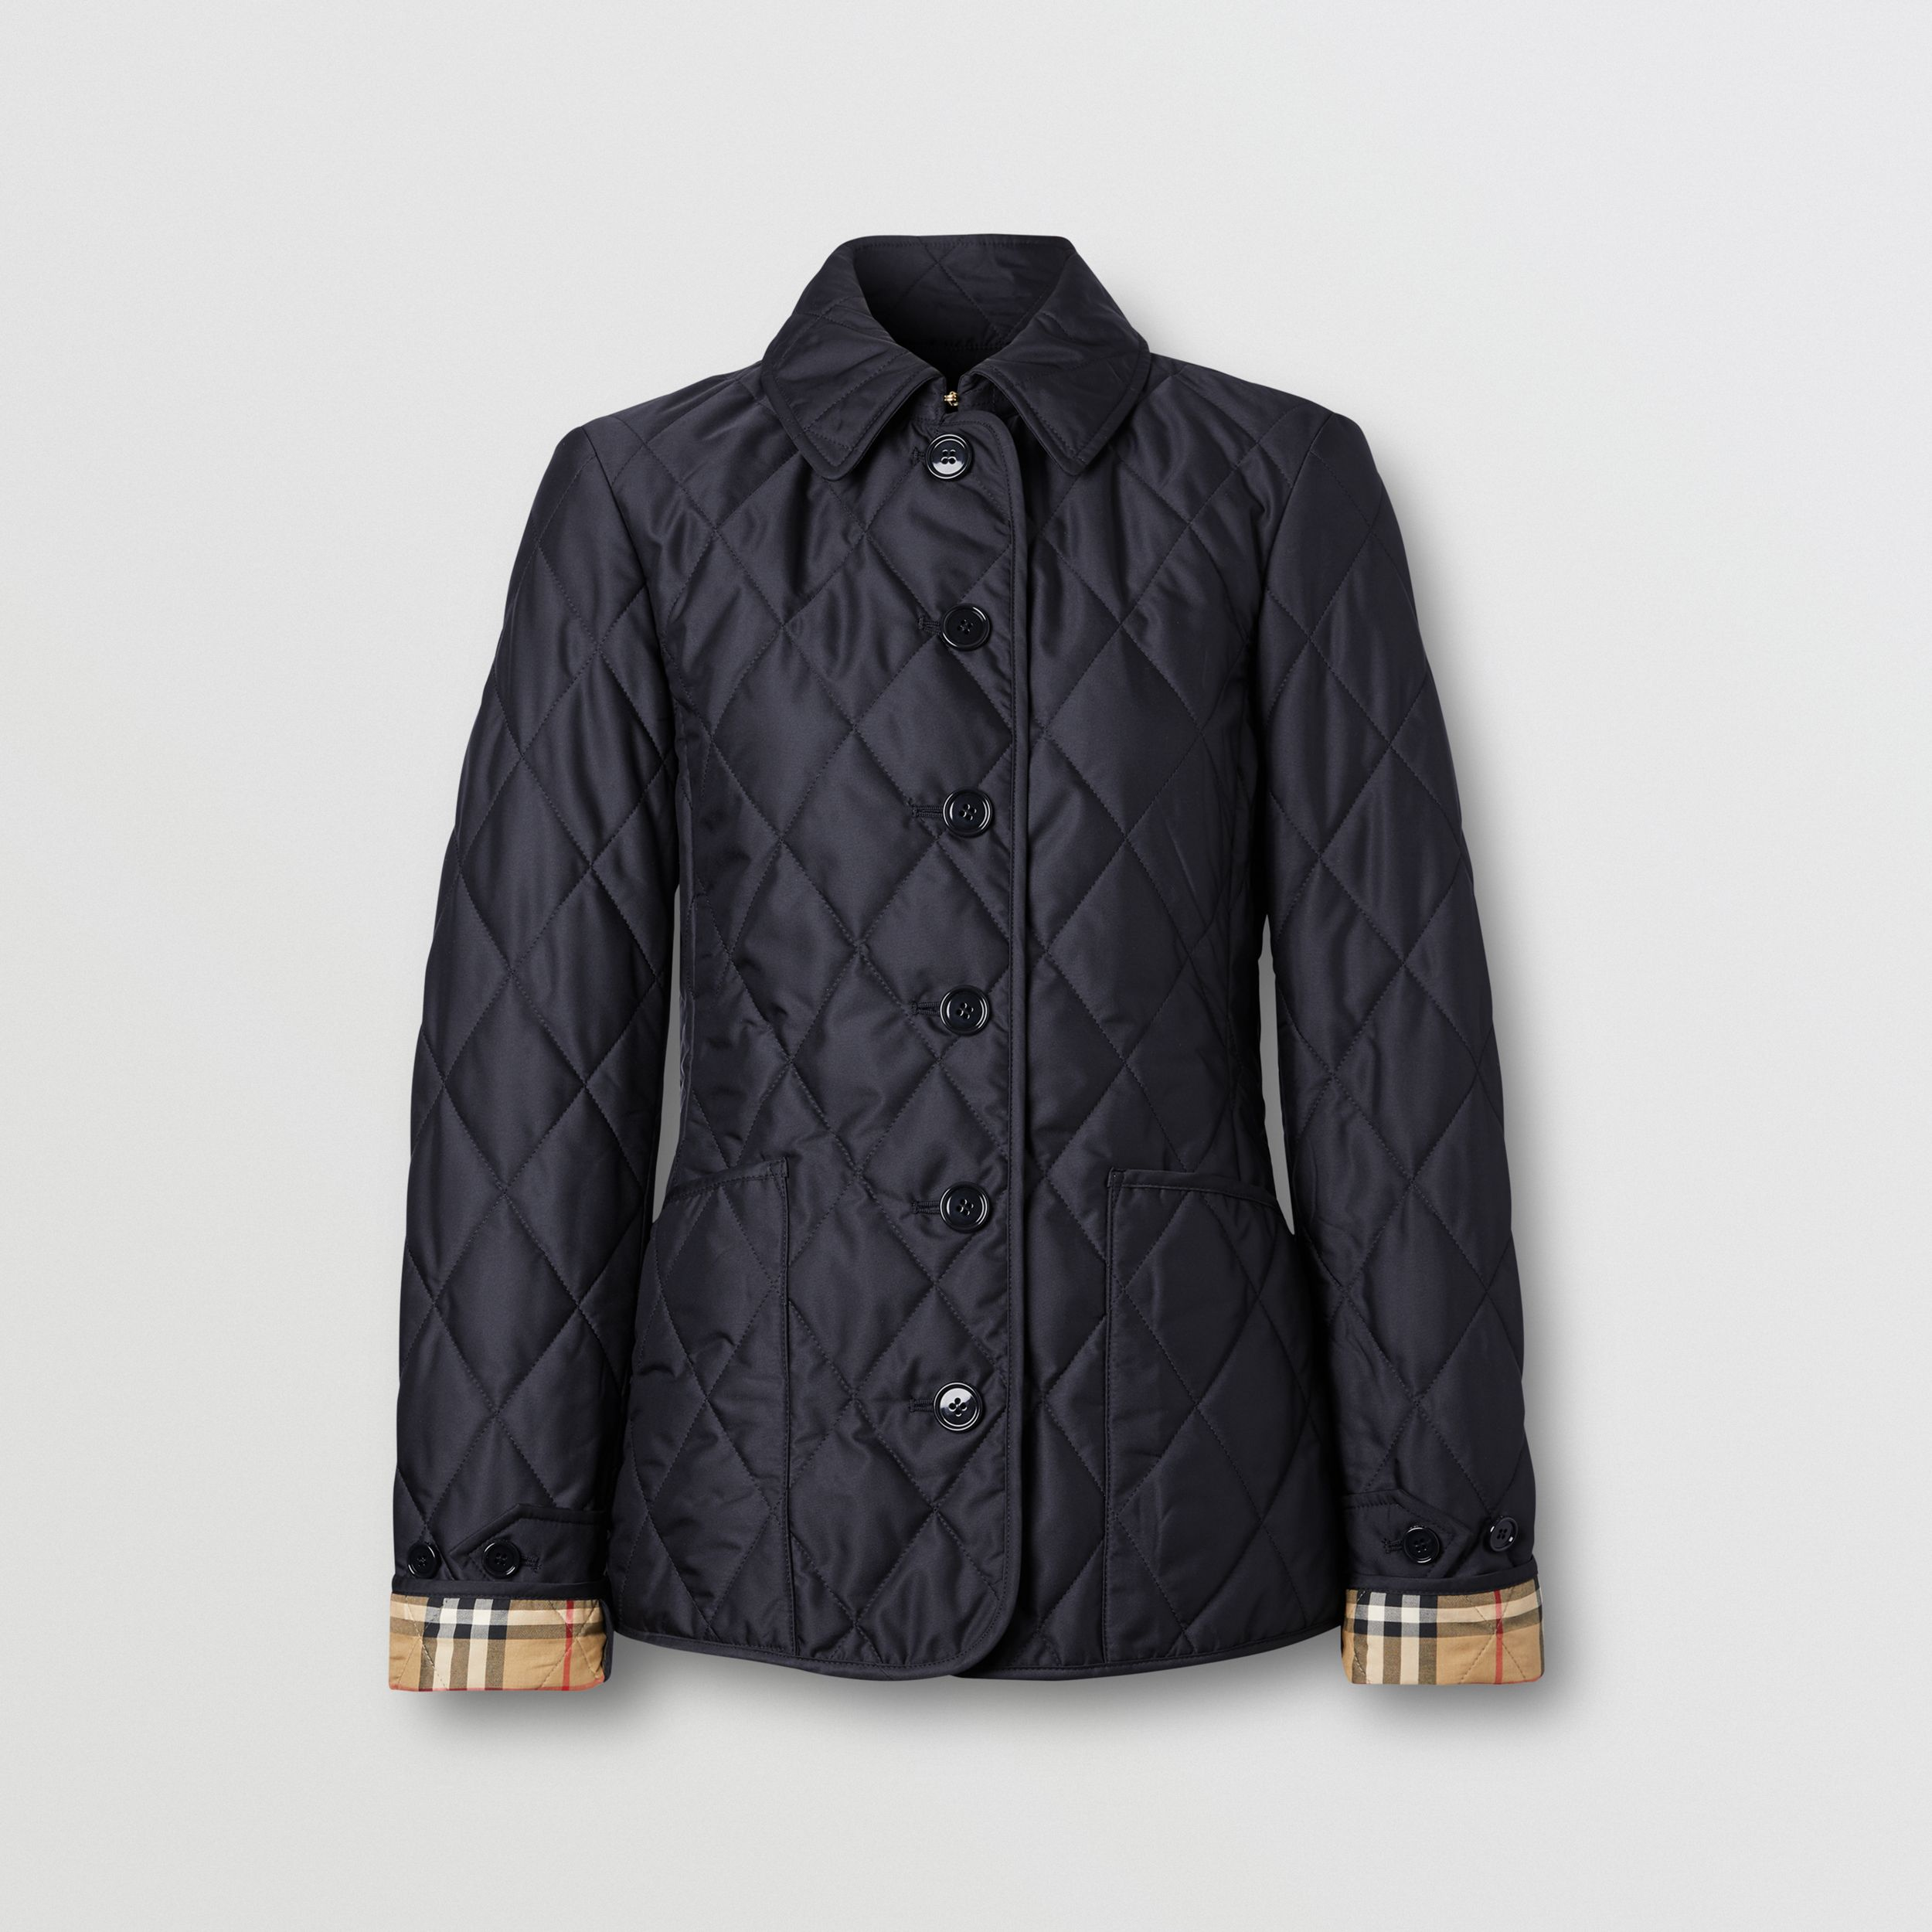 Diamond Quilted Thermoregulated Jacket in Midnight - Women | Burberry - 1